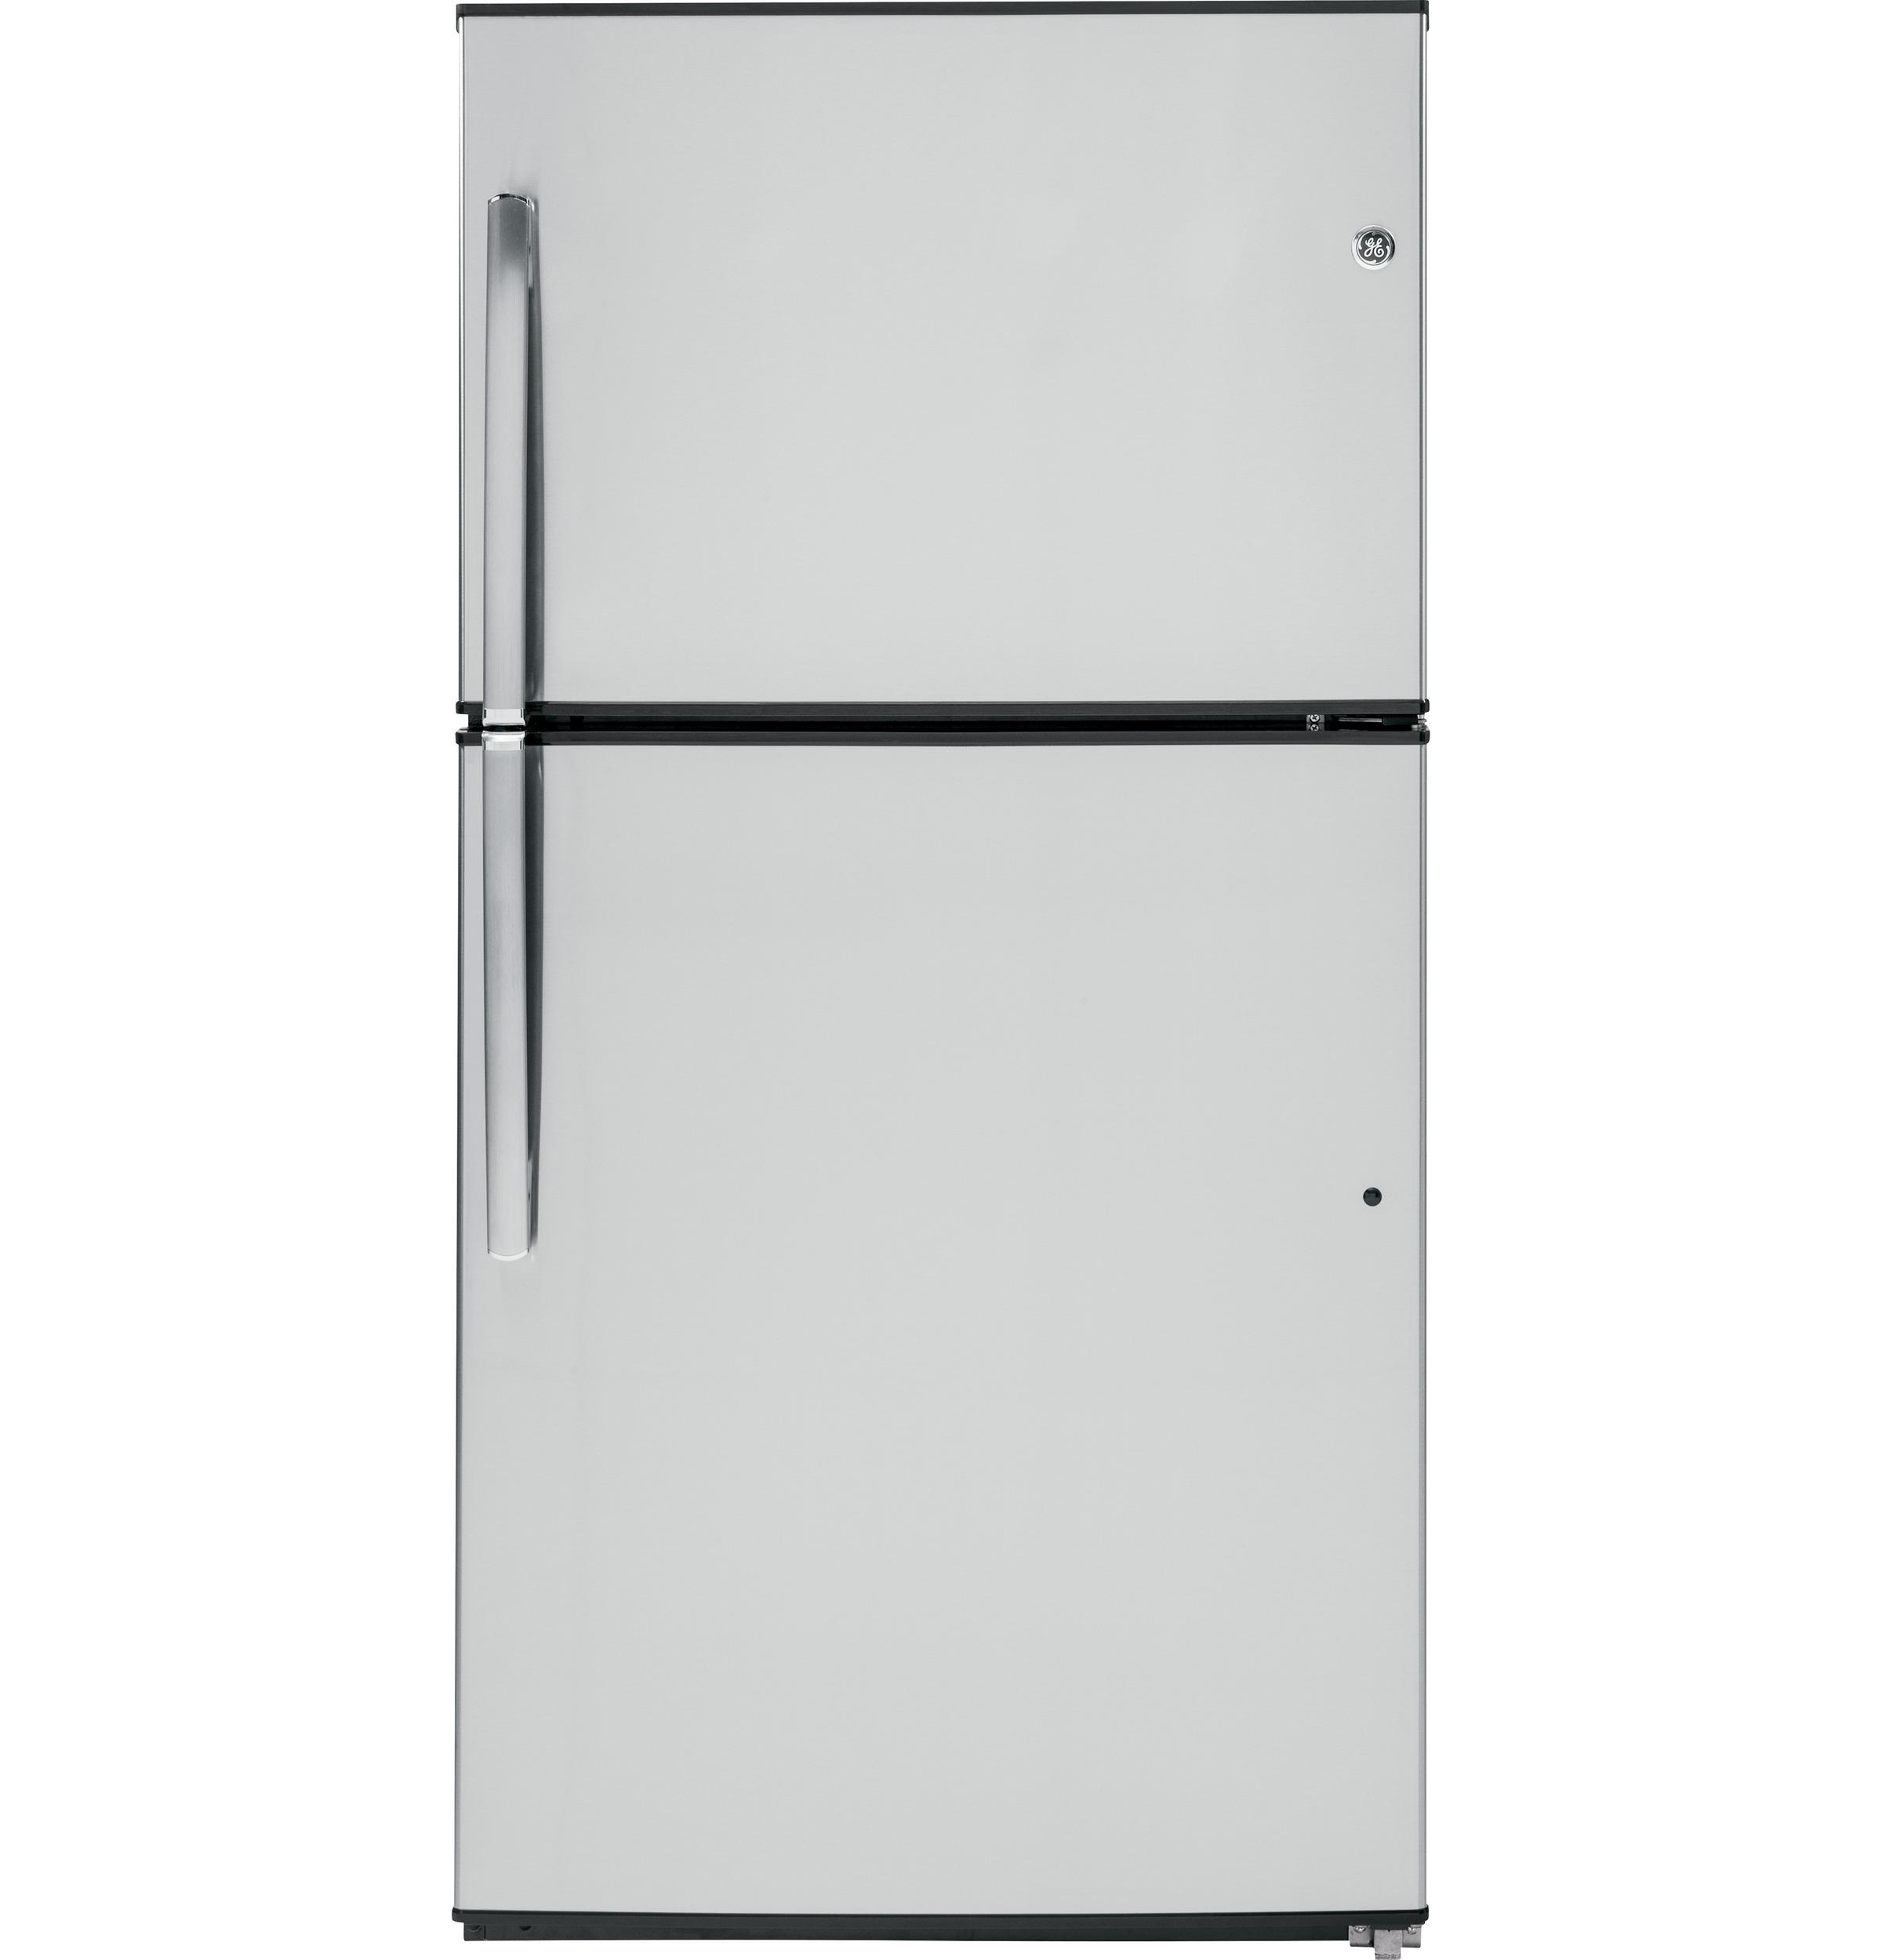 GE(R) ENERGY STAR(R) 21.1 Cu. Ft. Top-Freezer Refrigerator